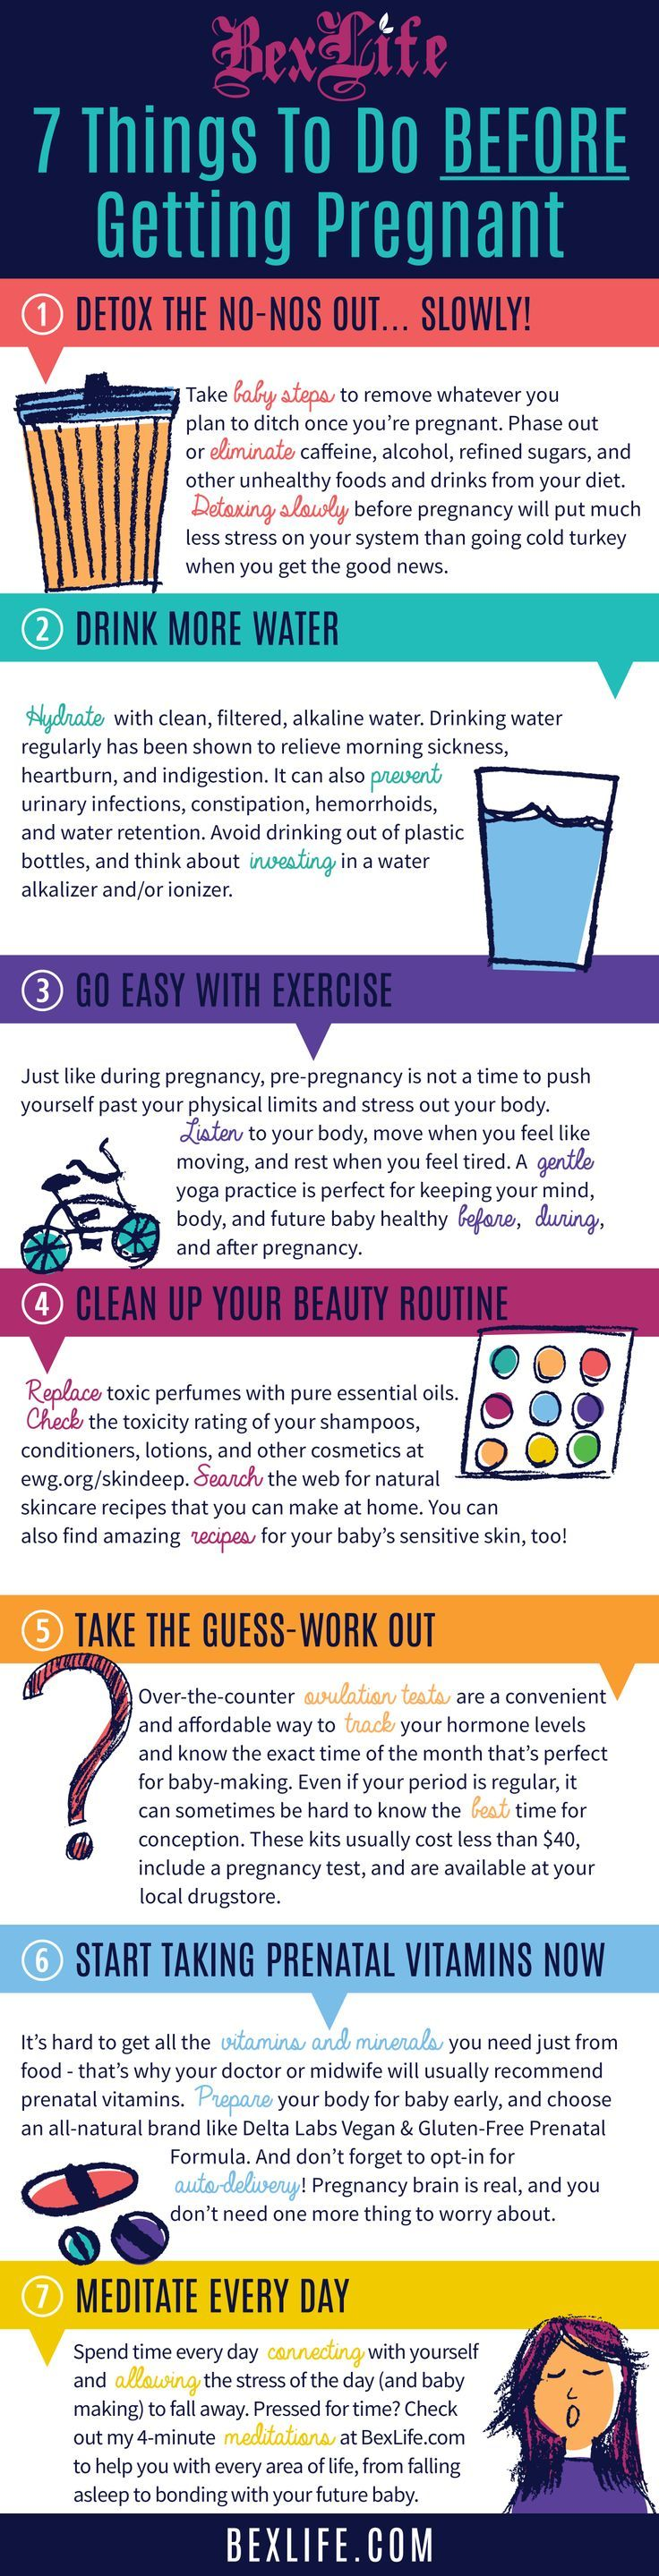 7 Things To Do Before Getting Pregnant! Great tips on how to prepare your body before pregnancy! #healthypregnancytips #waystoprepareforpregnancy #thingstodobeforepregnancy